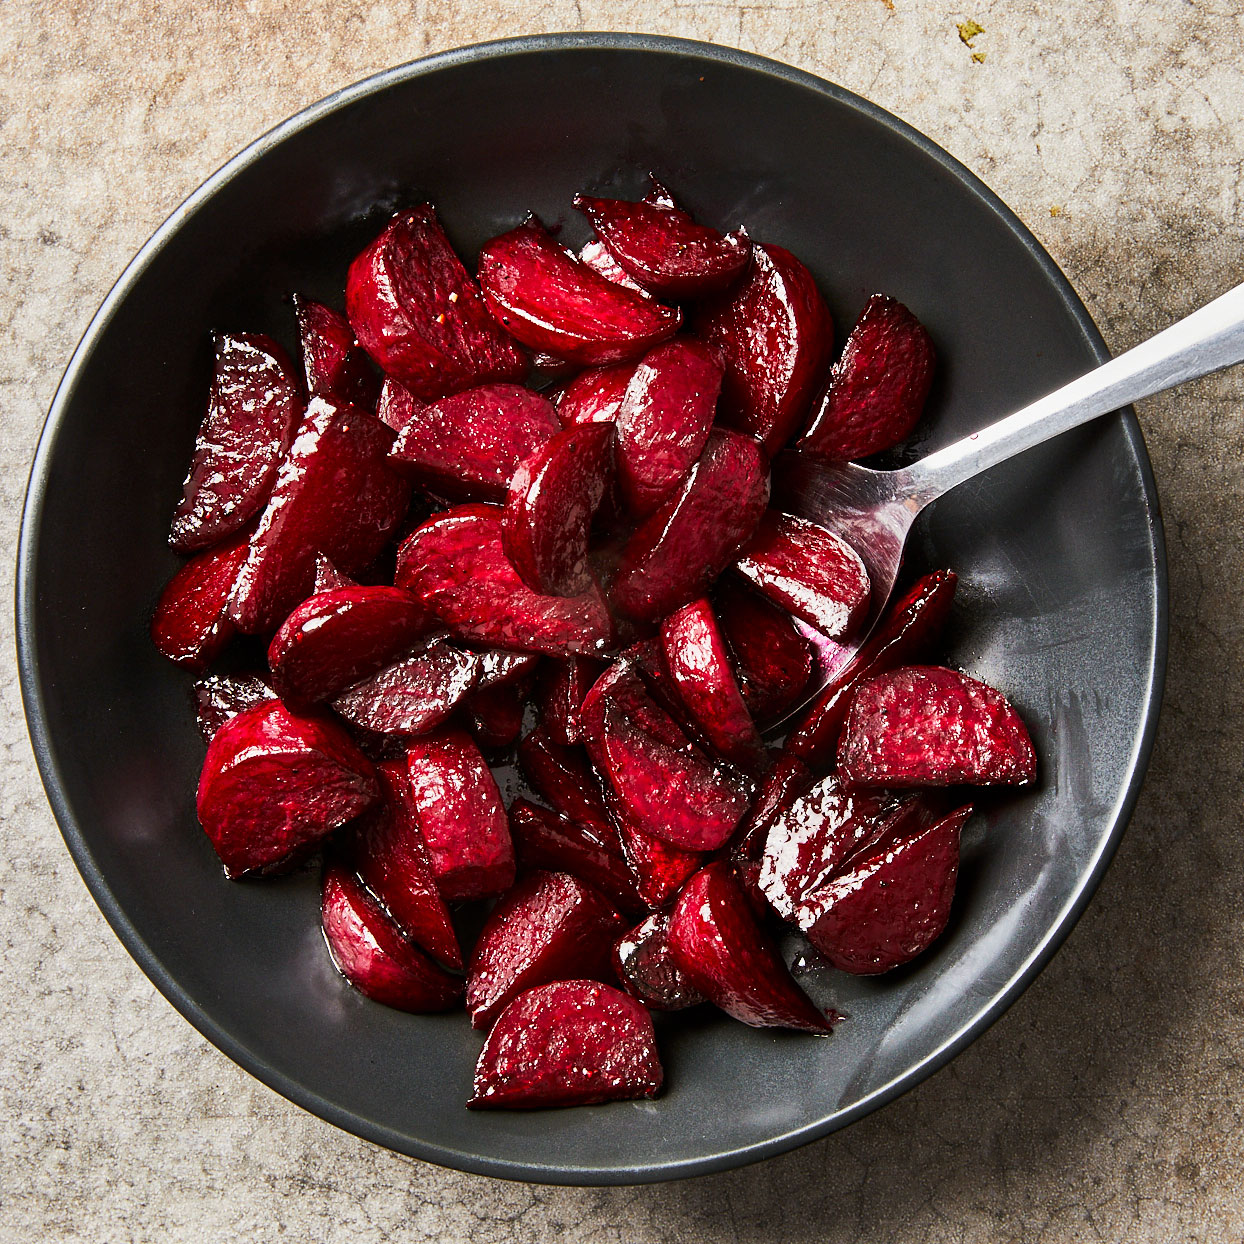 Earthy beets turn sweet and tender when they're roasted. Preheating your baking sheet speeds up the roasting time and gives the outside of the beets a quick and flavorful sear. Honey and lemon juice add sweet and tangy notes.Source: EatingWell.com, July 2020